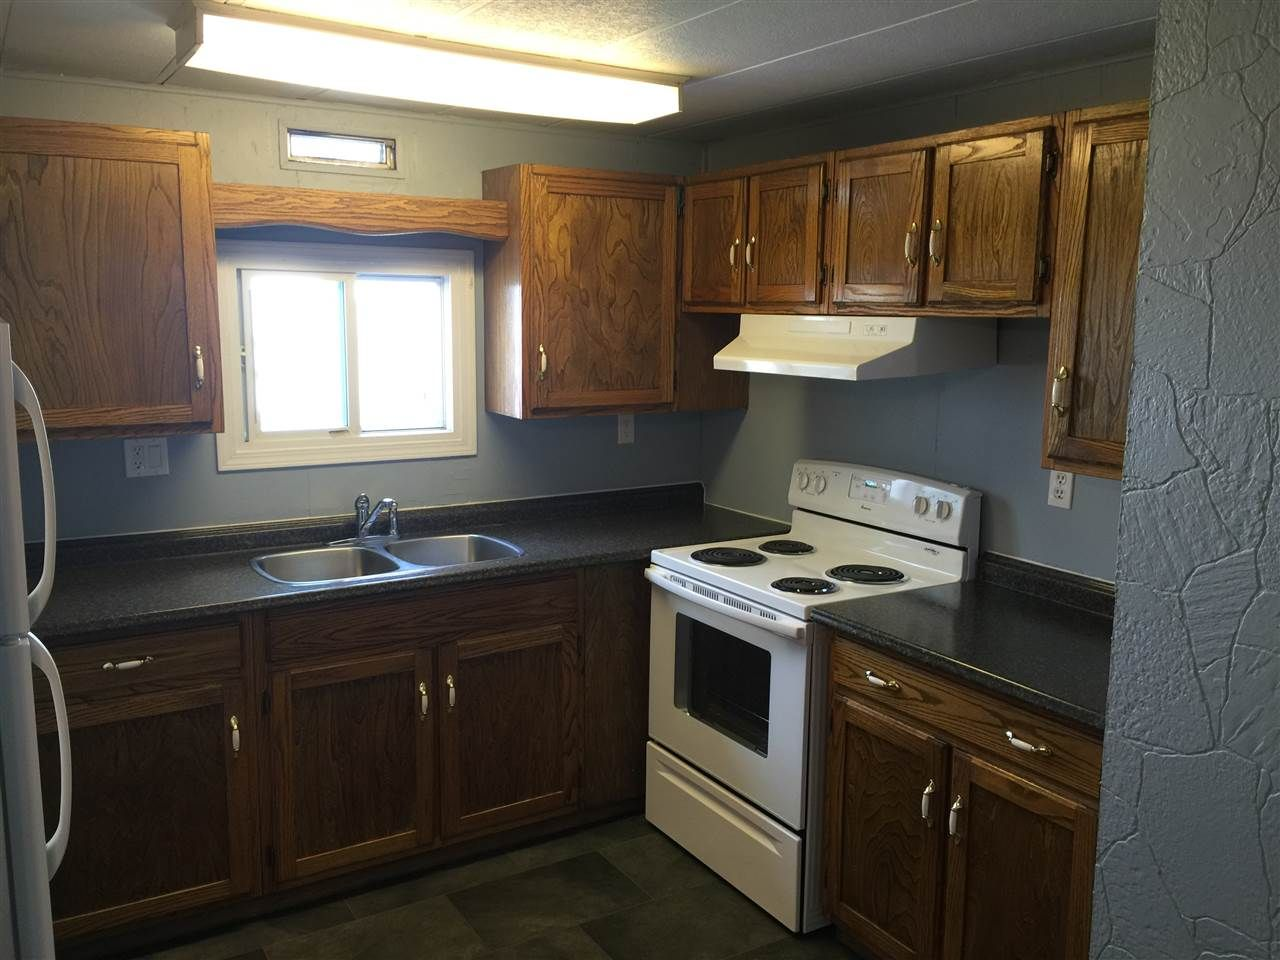 """Photo 5: Photos: 41 8420 ALASKA Road in Fort St. John: Fort St. John - City SE Manufactured Home for sale in """"PEACE COUNTRY MOBILE HOME PARK"""" (Fort St. John (Zone 60))  : MLS®# R2069792"""